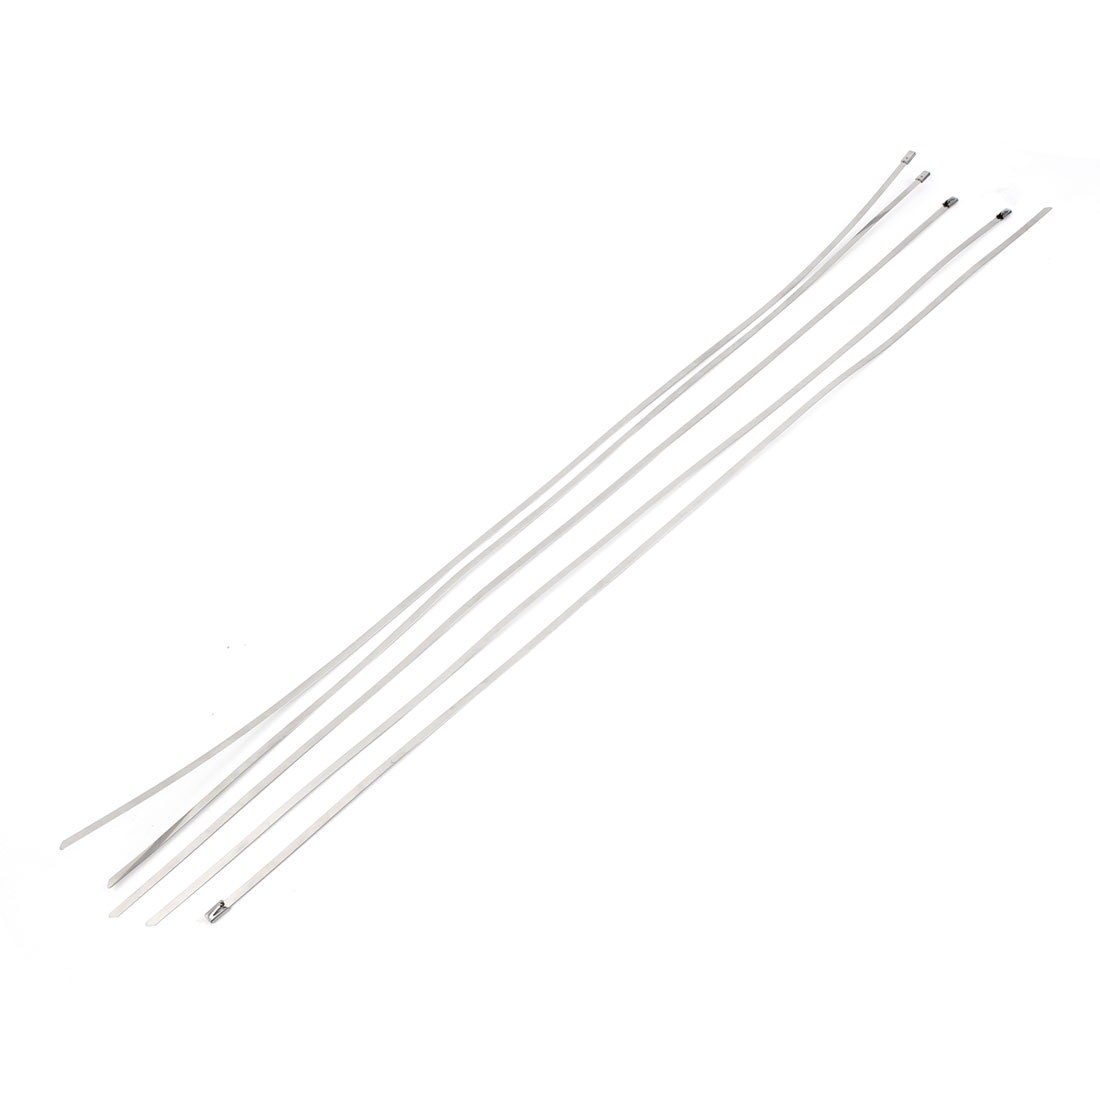 700mm Long 4.6mm Wide Stainless Steel Sprayed Cable Tie 5PCS